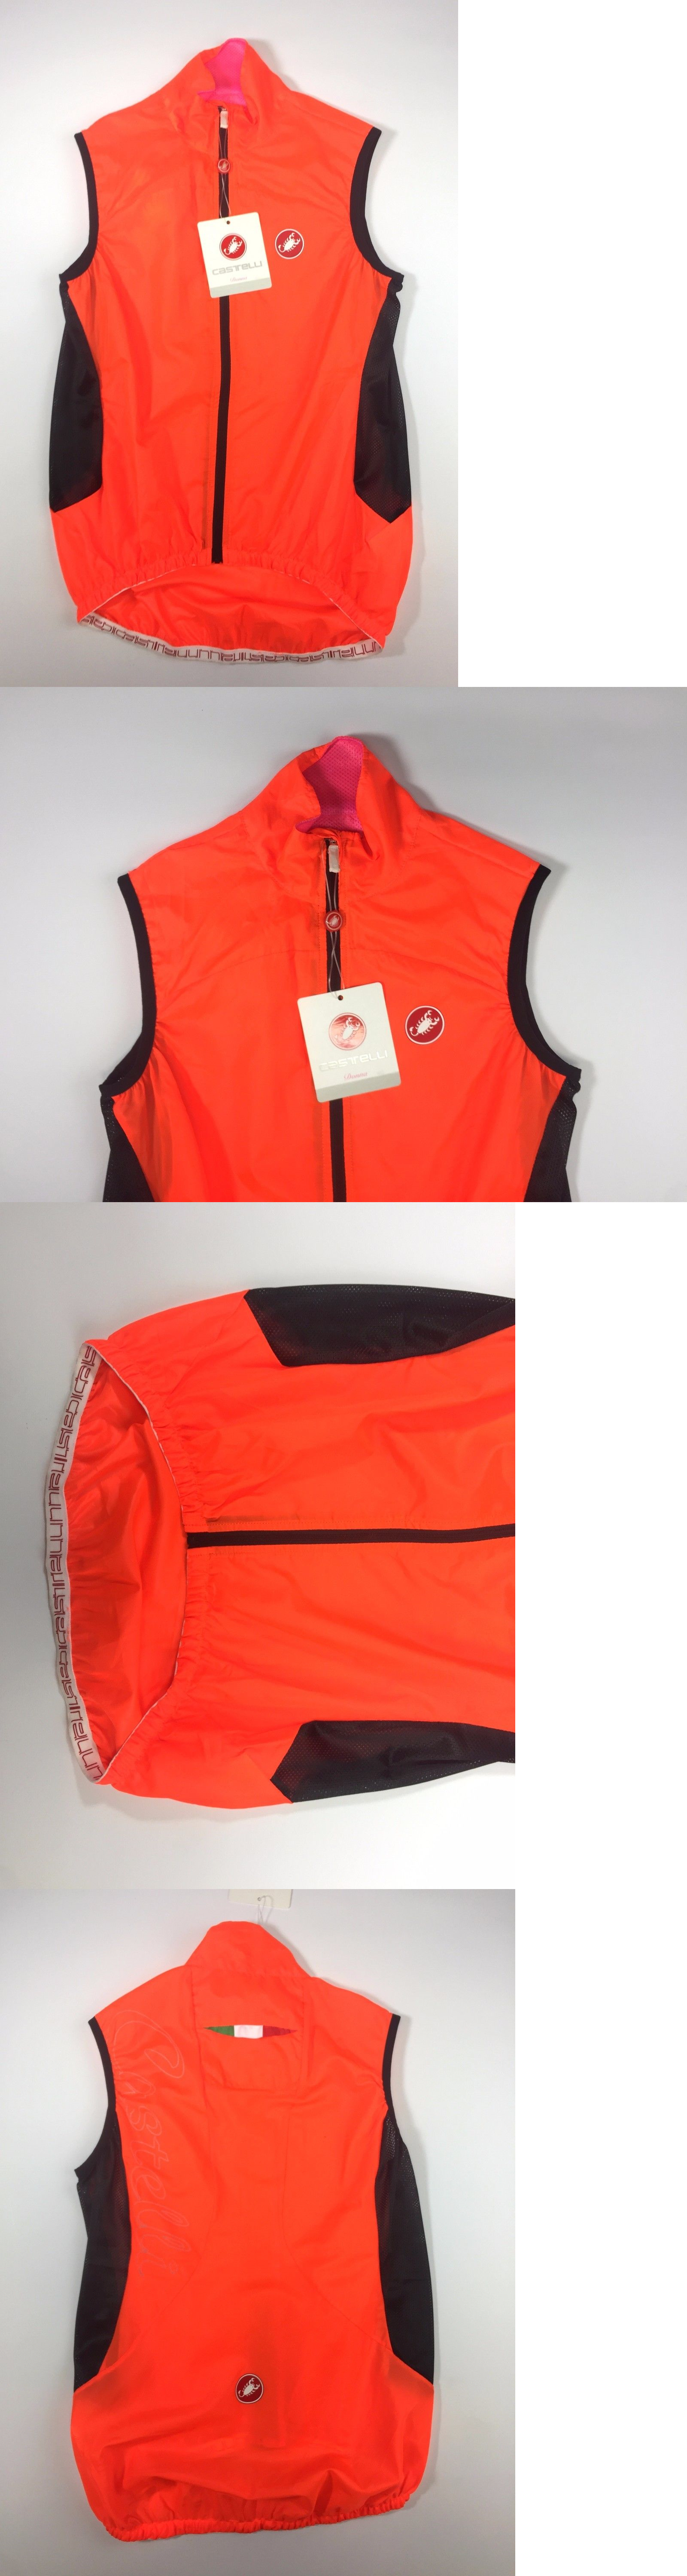 Vests 177856  Castelli Women S Velo Vest Size Small Orange New -  BUY IT 74eac61be